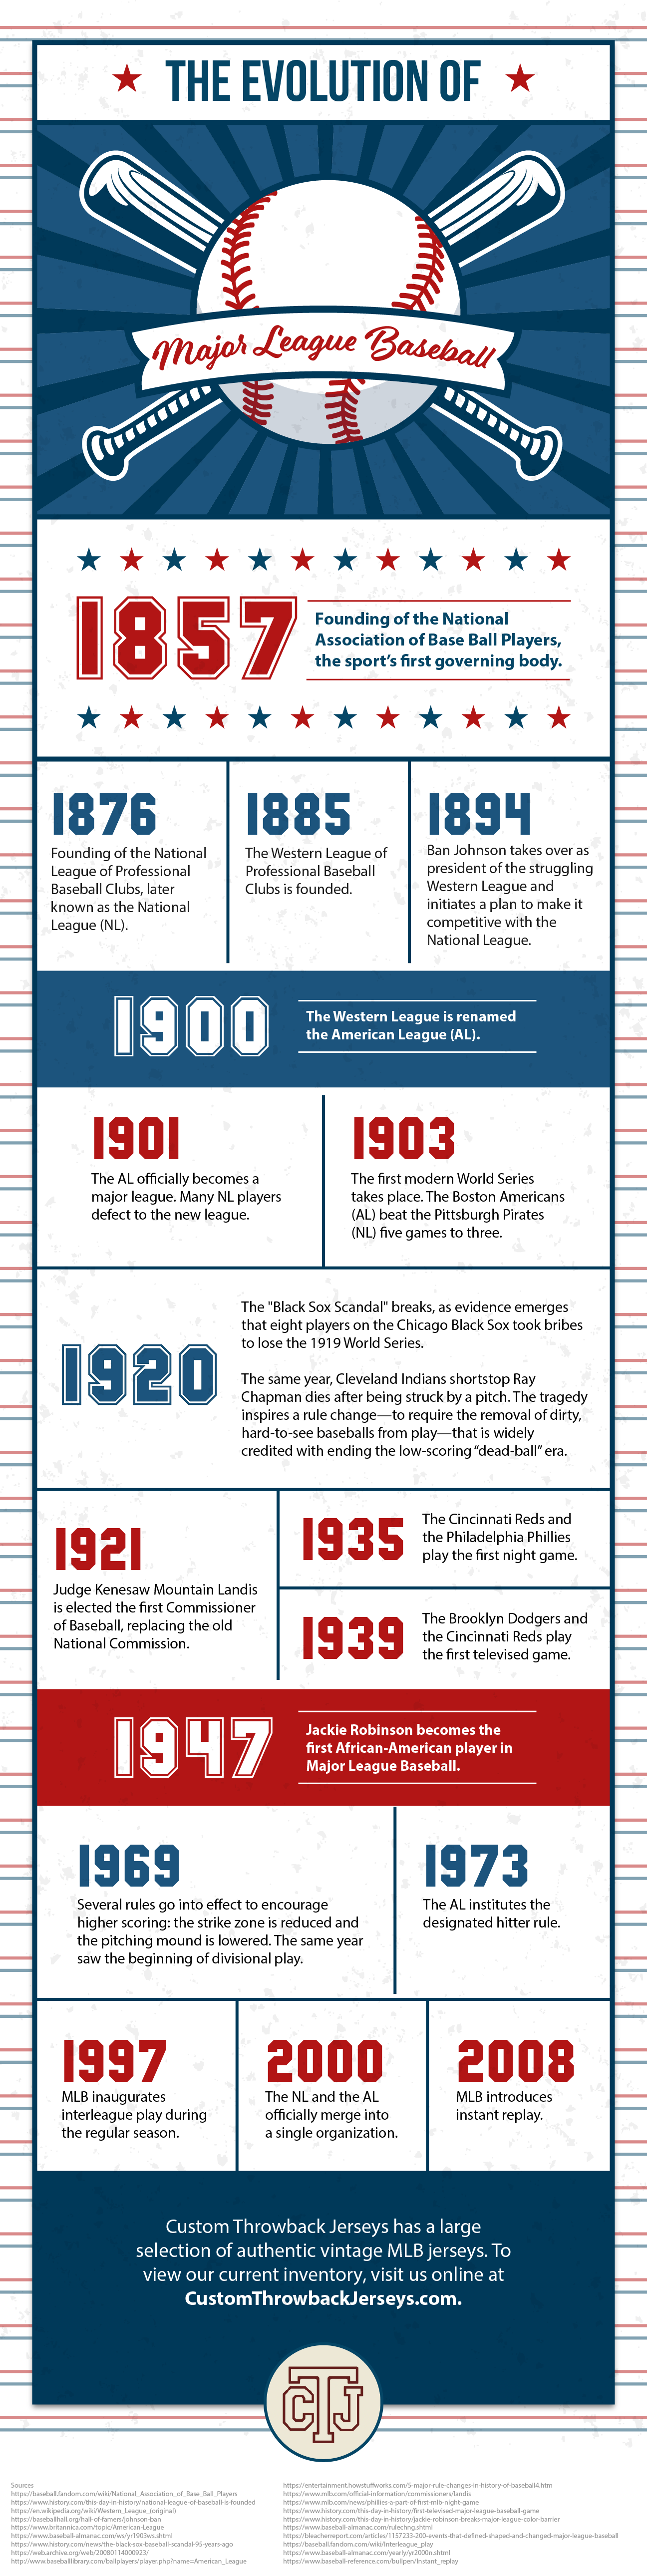 The Evolution of Major League Baseball Infographic